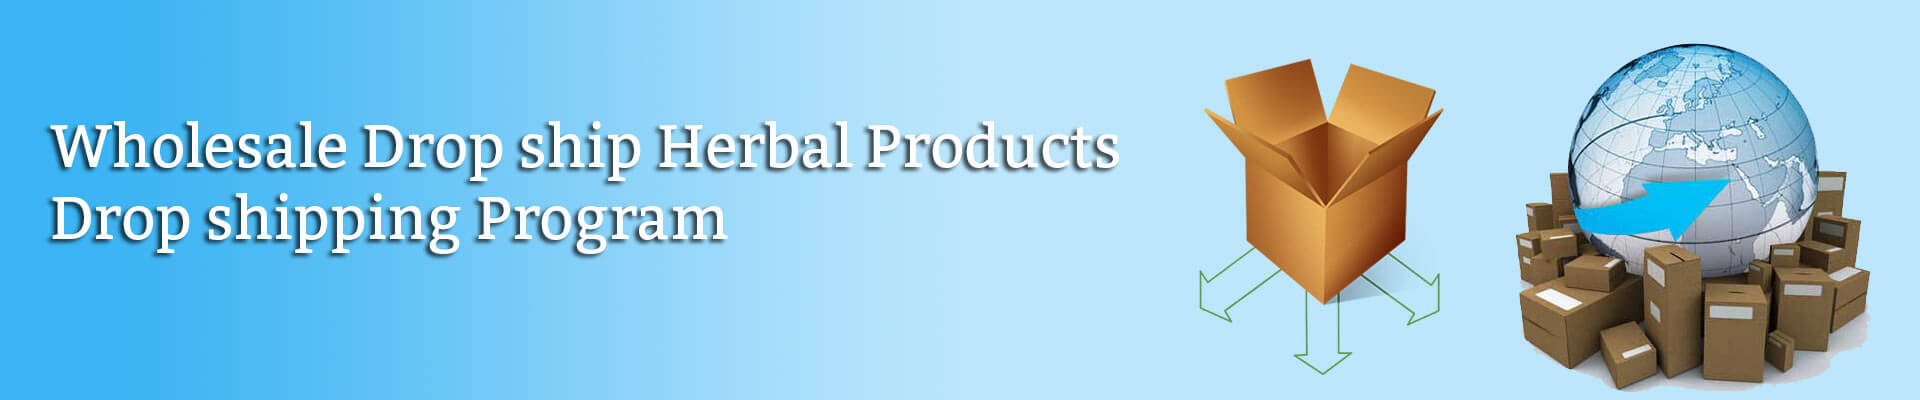 Wholesale Dropshipping Program for Herbal Products